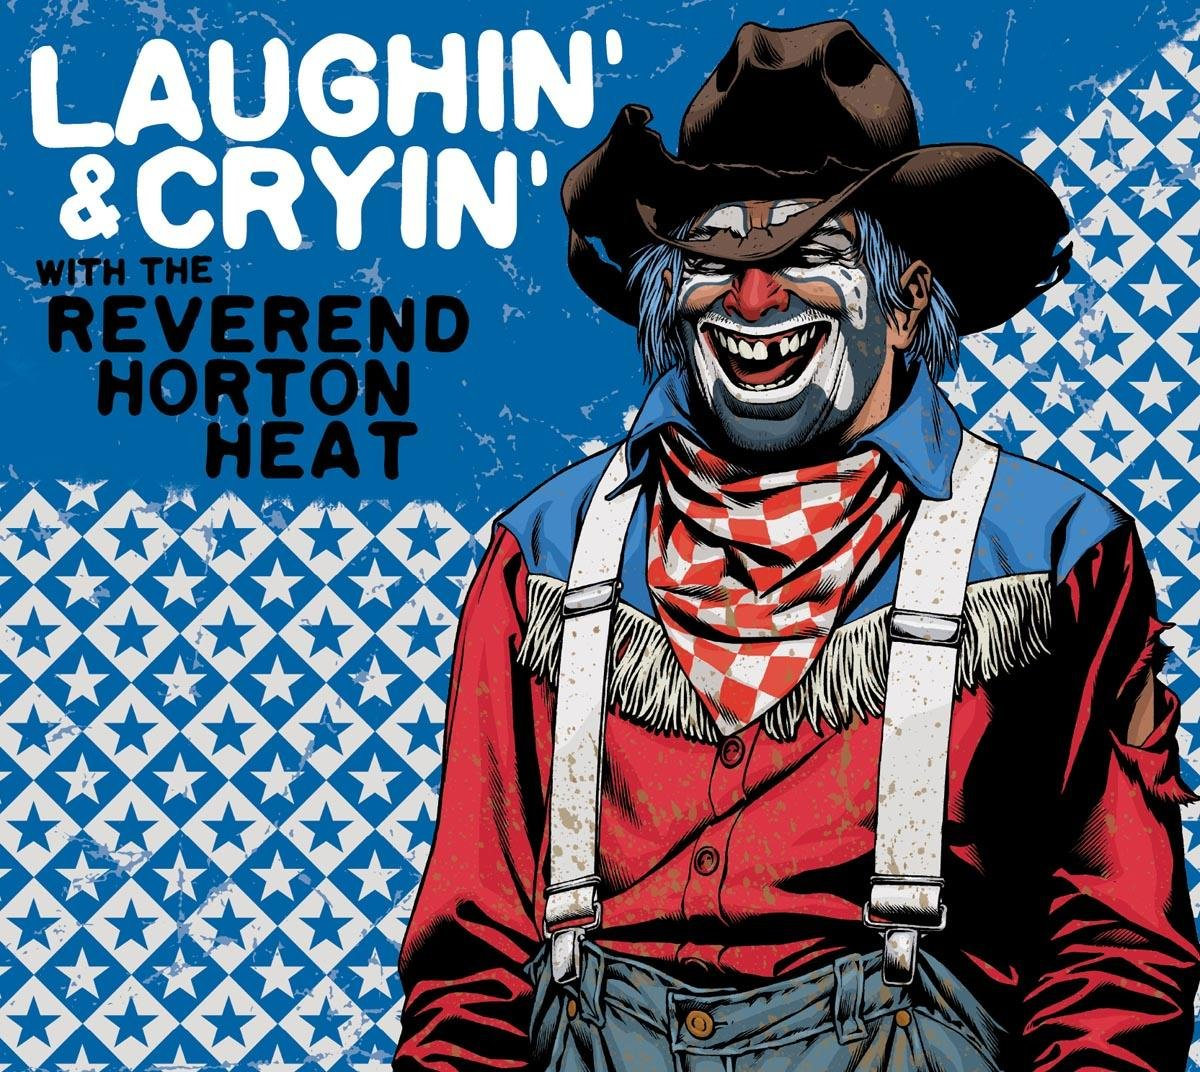 CD : The Reverend Horton Heat - Laughin' And Cryin' With Reverend Horton Heat (Digipack Packaging)